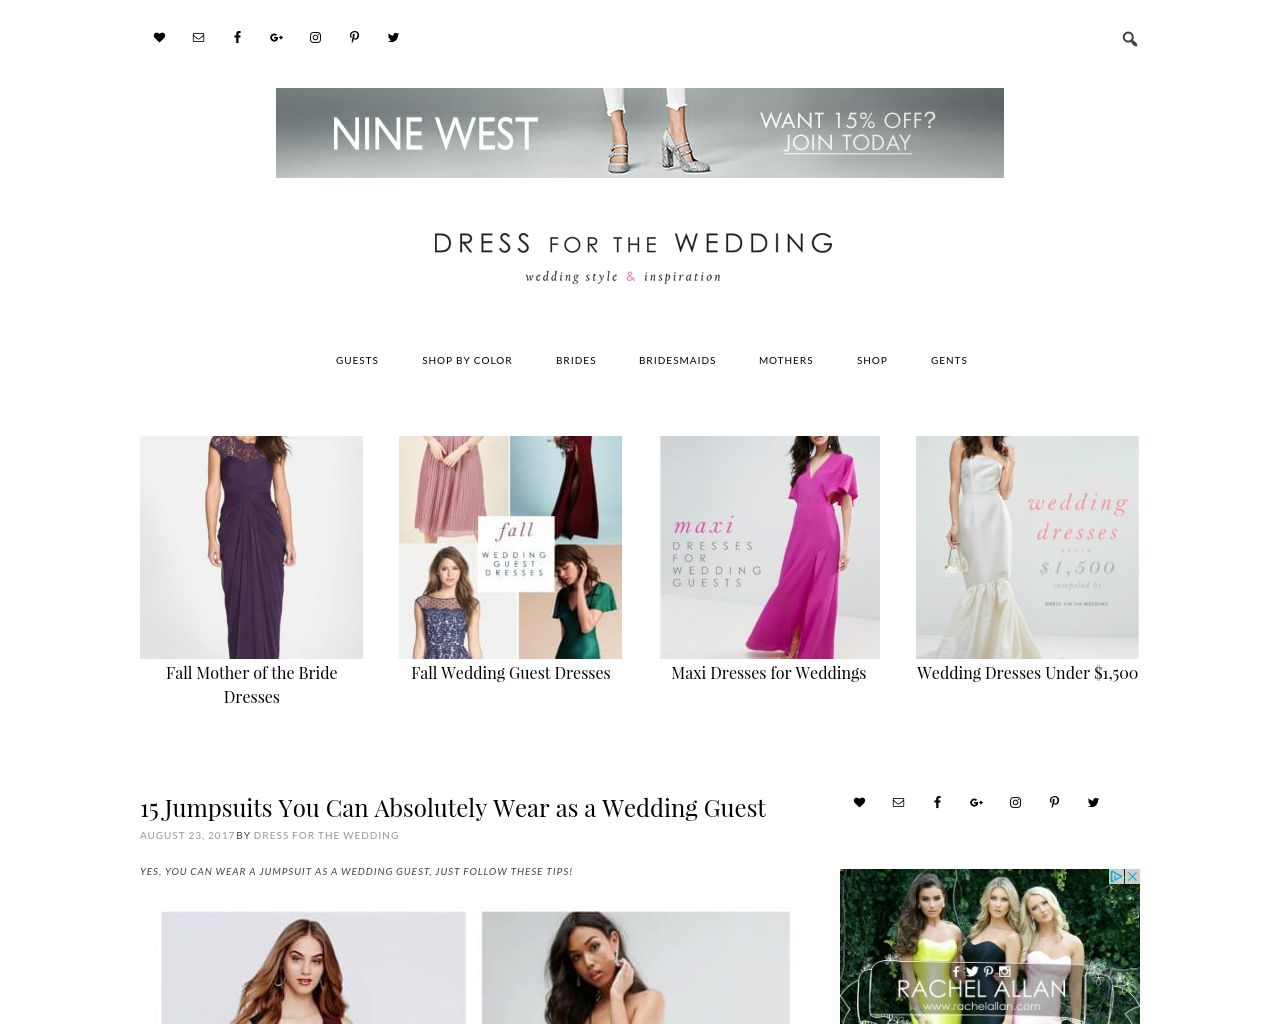 Dress-For-The-Wedding-Advertising-Reviews-Pricing